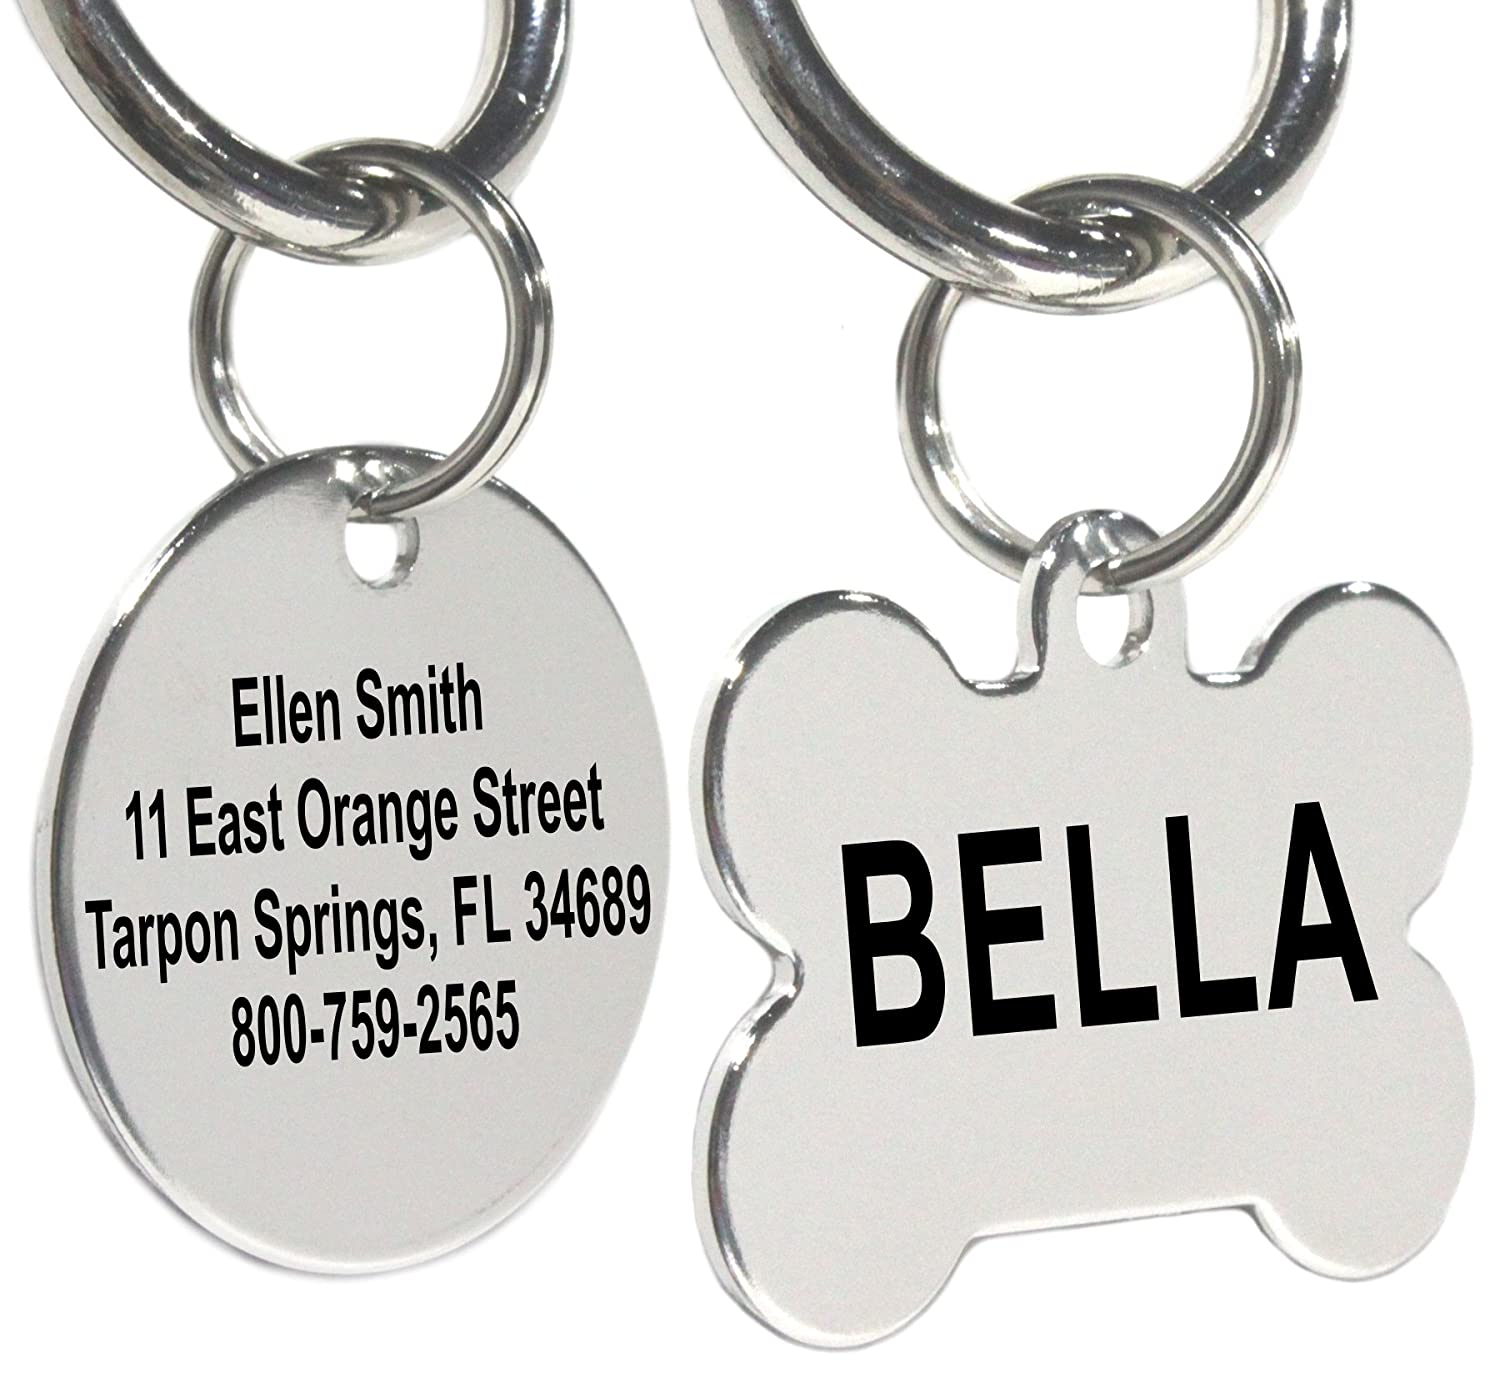 Stainless Steel Pet ID Tags for Dogs and Cats by Providence Engraving: Bone, Round, Heart, Rectangle, or Star. Up to 8 Custom Lines of Text - Front and Back